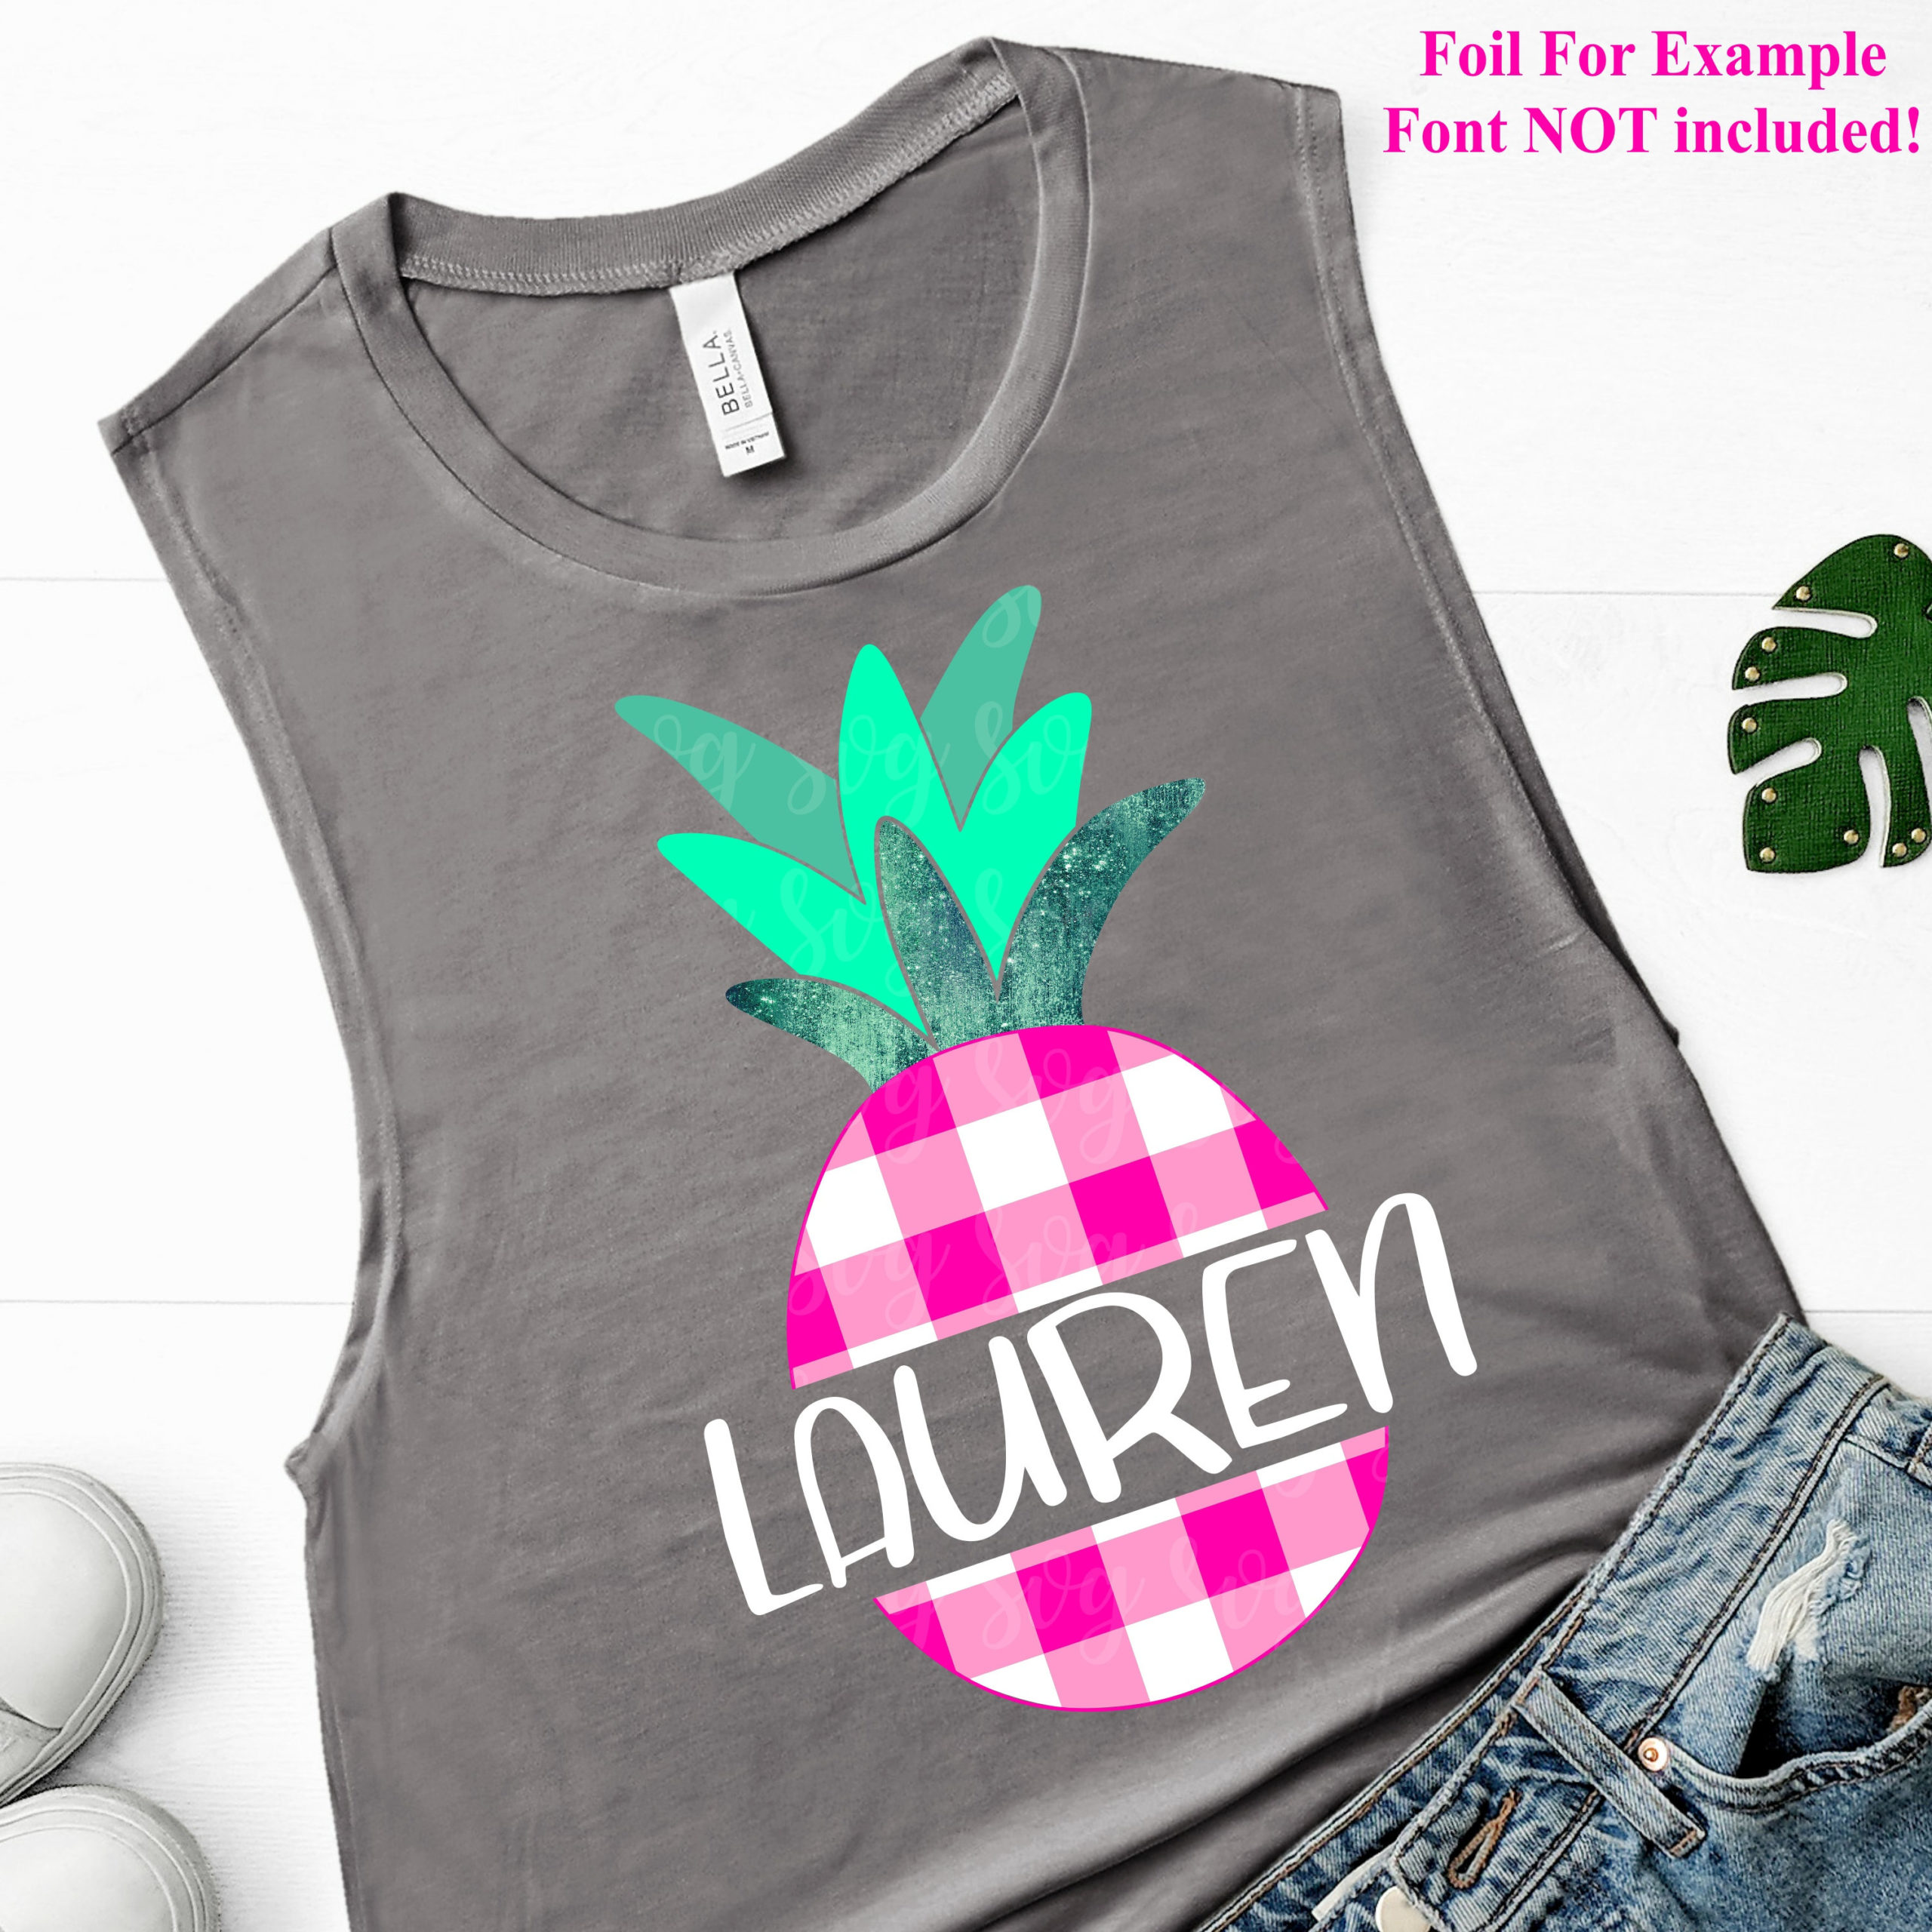 Pineapple-svg-plaid-svg-monogram-svg-split-monogram-svg-beach-svg-girls-svg-svg-pngepsdxfpreppy-svgsvg-for-cricut-silhouette-dxf-5ef78e03